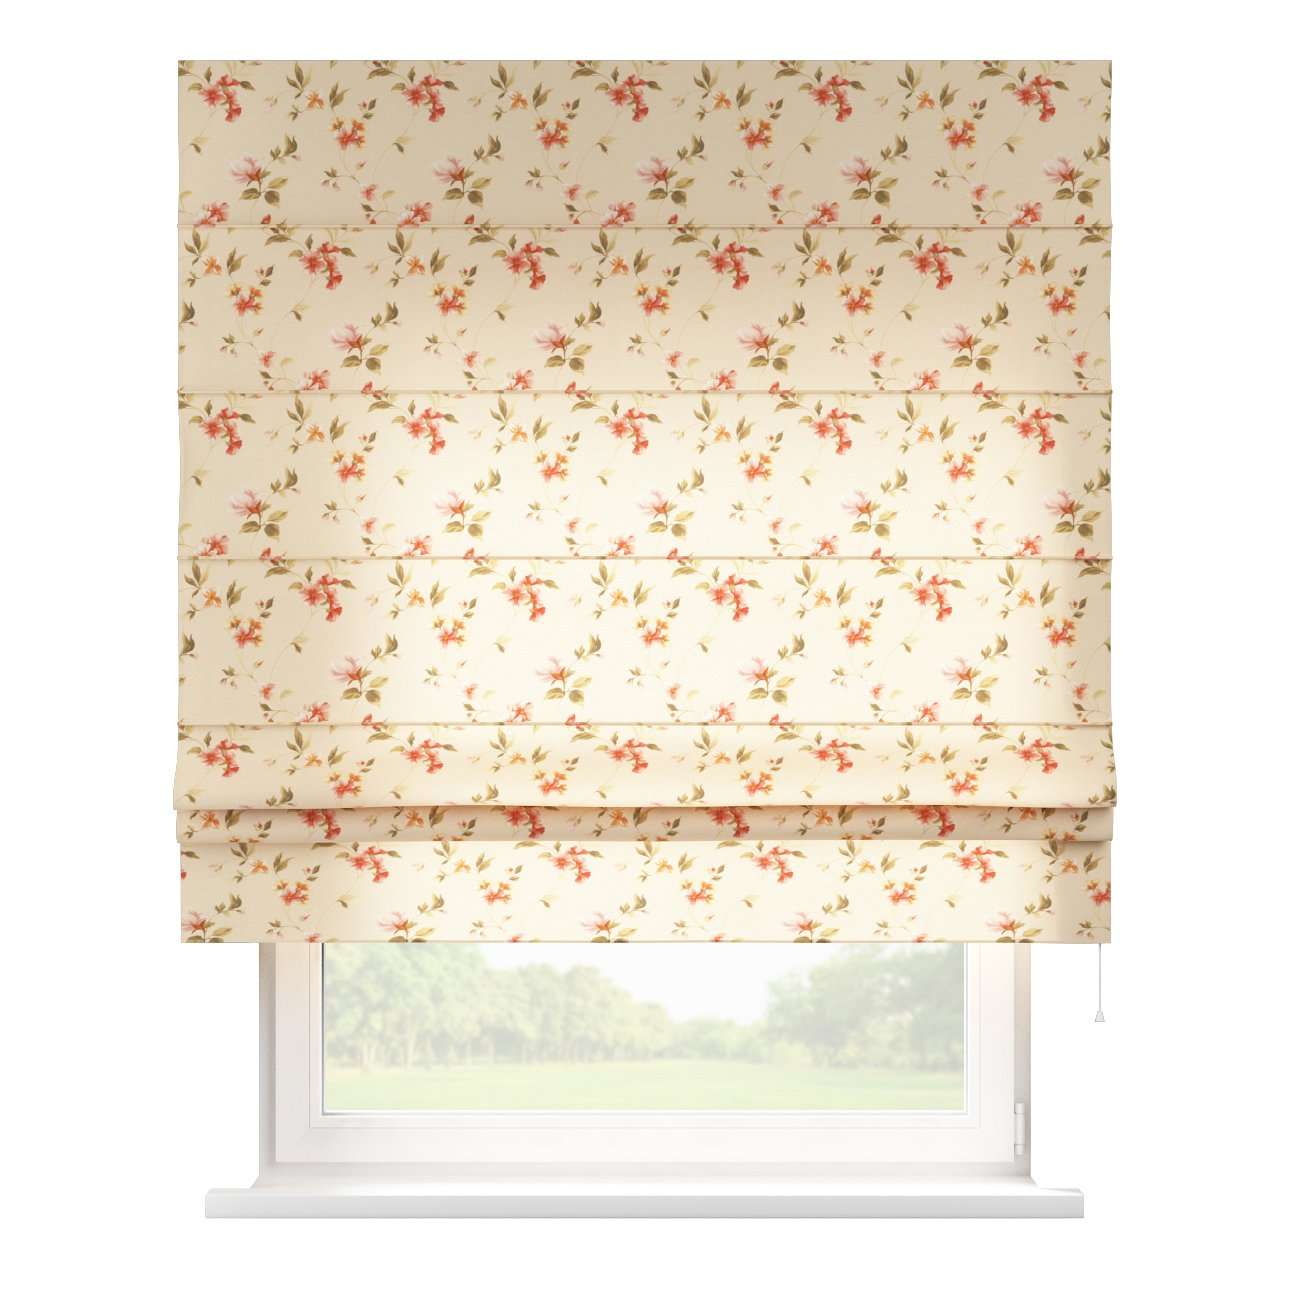 Padva roman blind  80 x 170 cm (31.5 x 67 inch) in collection Londres, fabric: 124-05